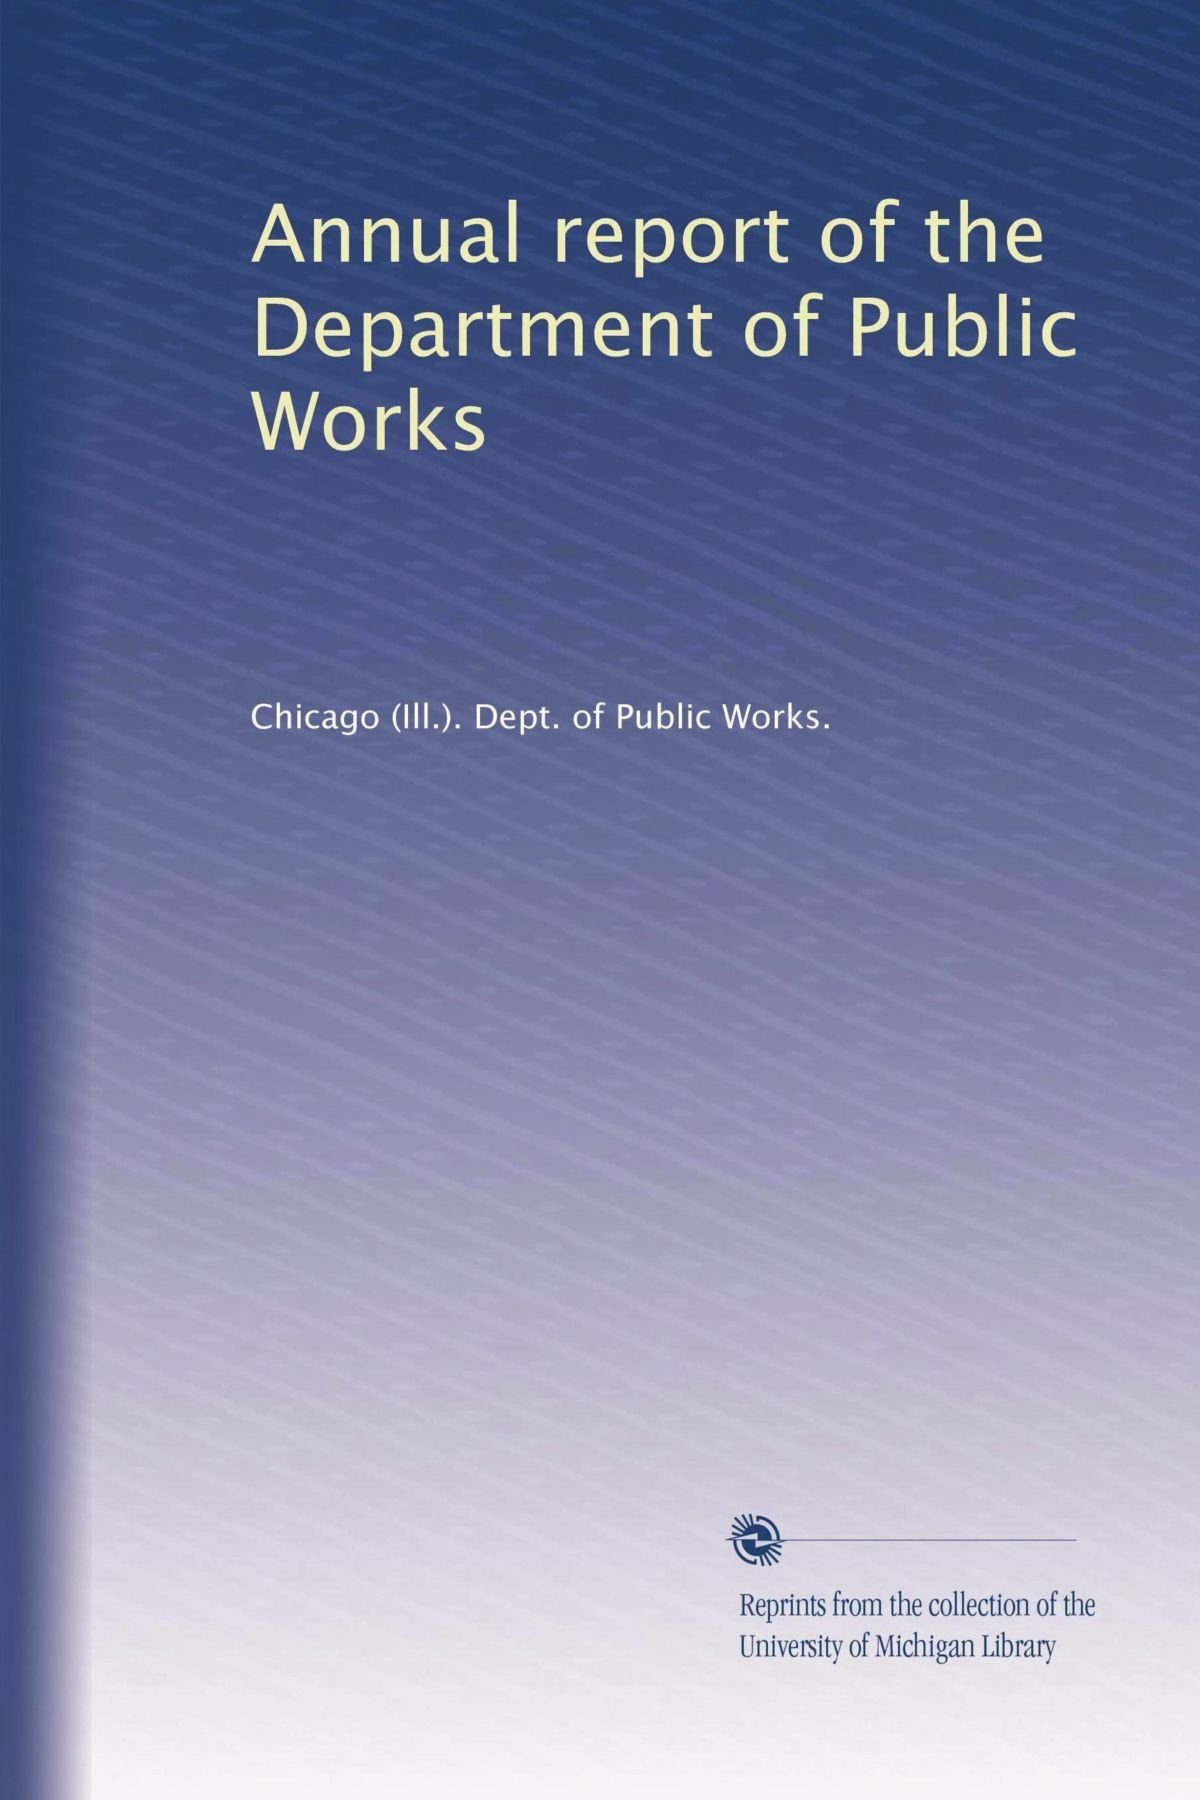 Download Annual report of the Department of Public Works (Volume 21) pdf